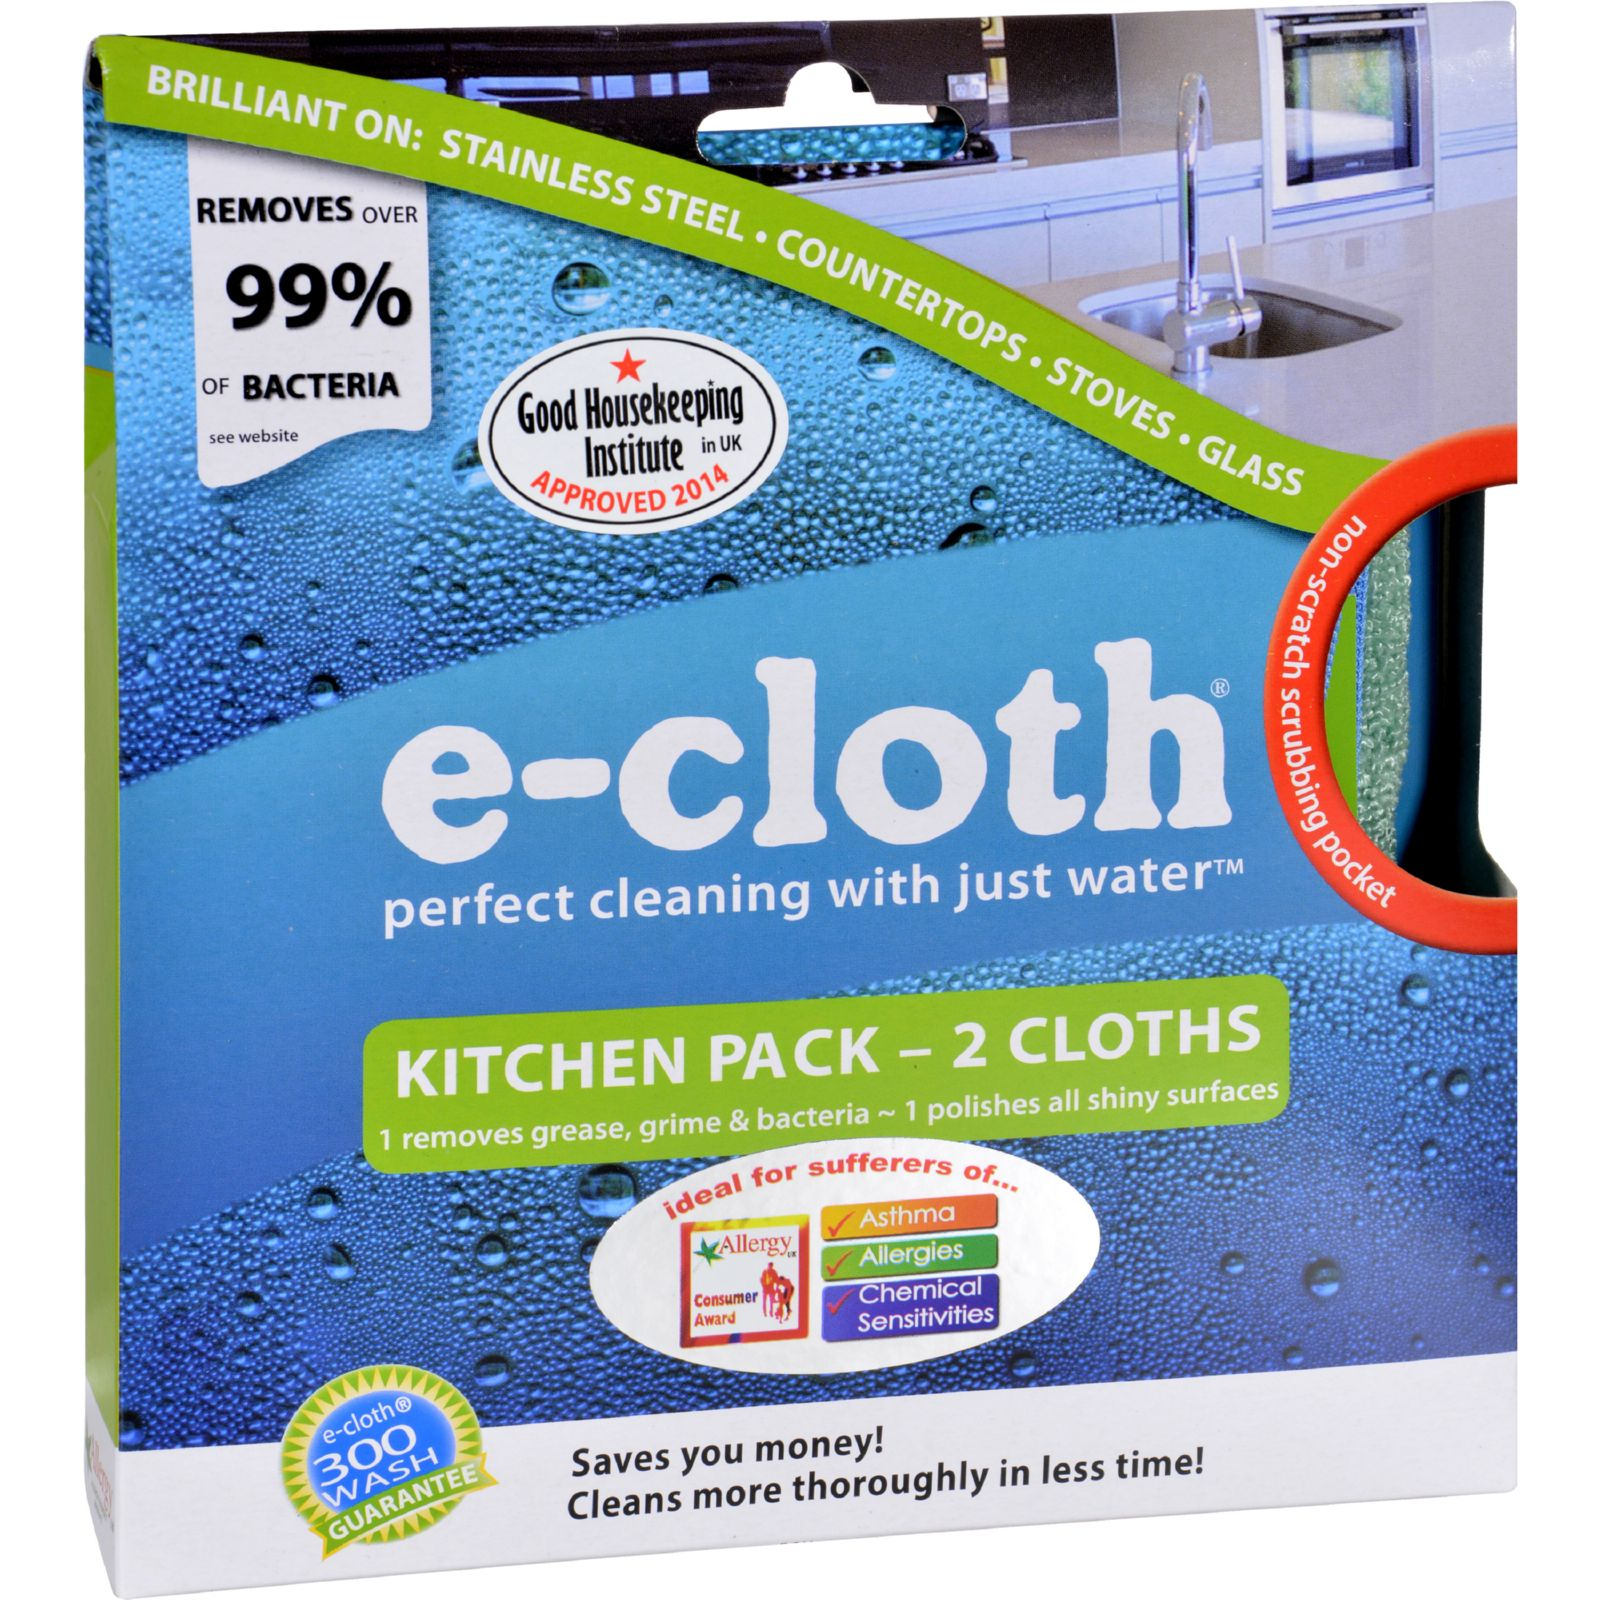 Kitchen Cleaning Cloth - 2 Pack